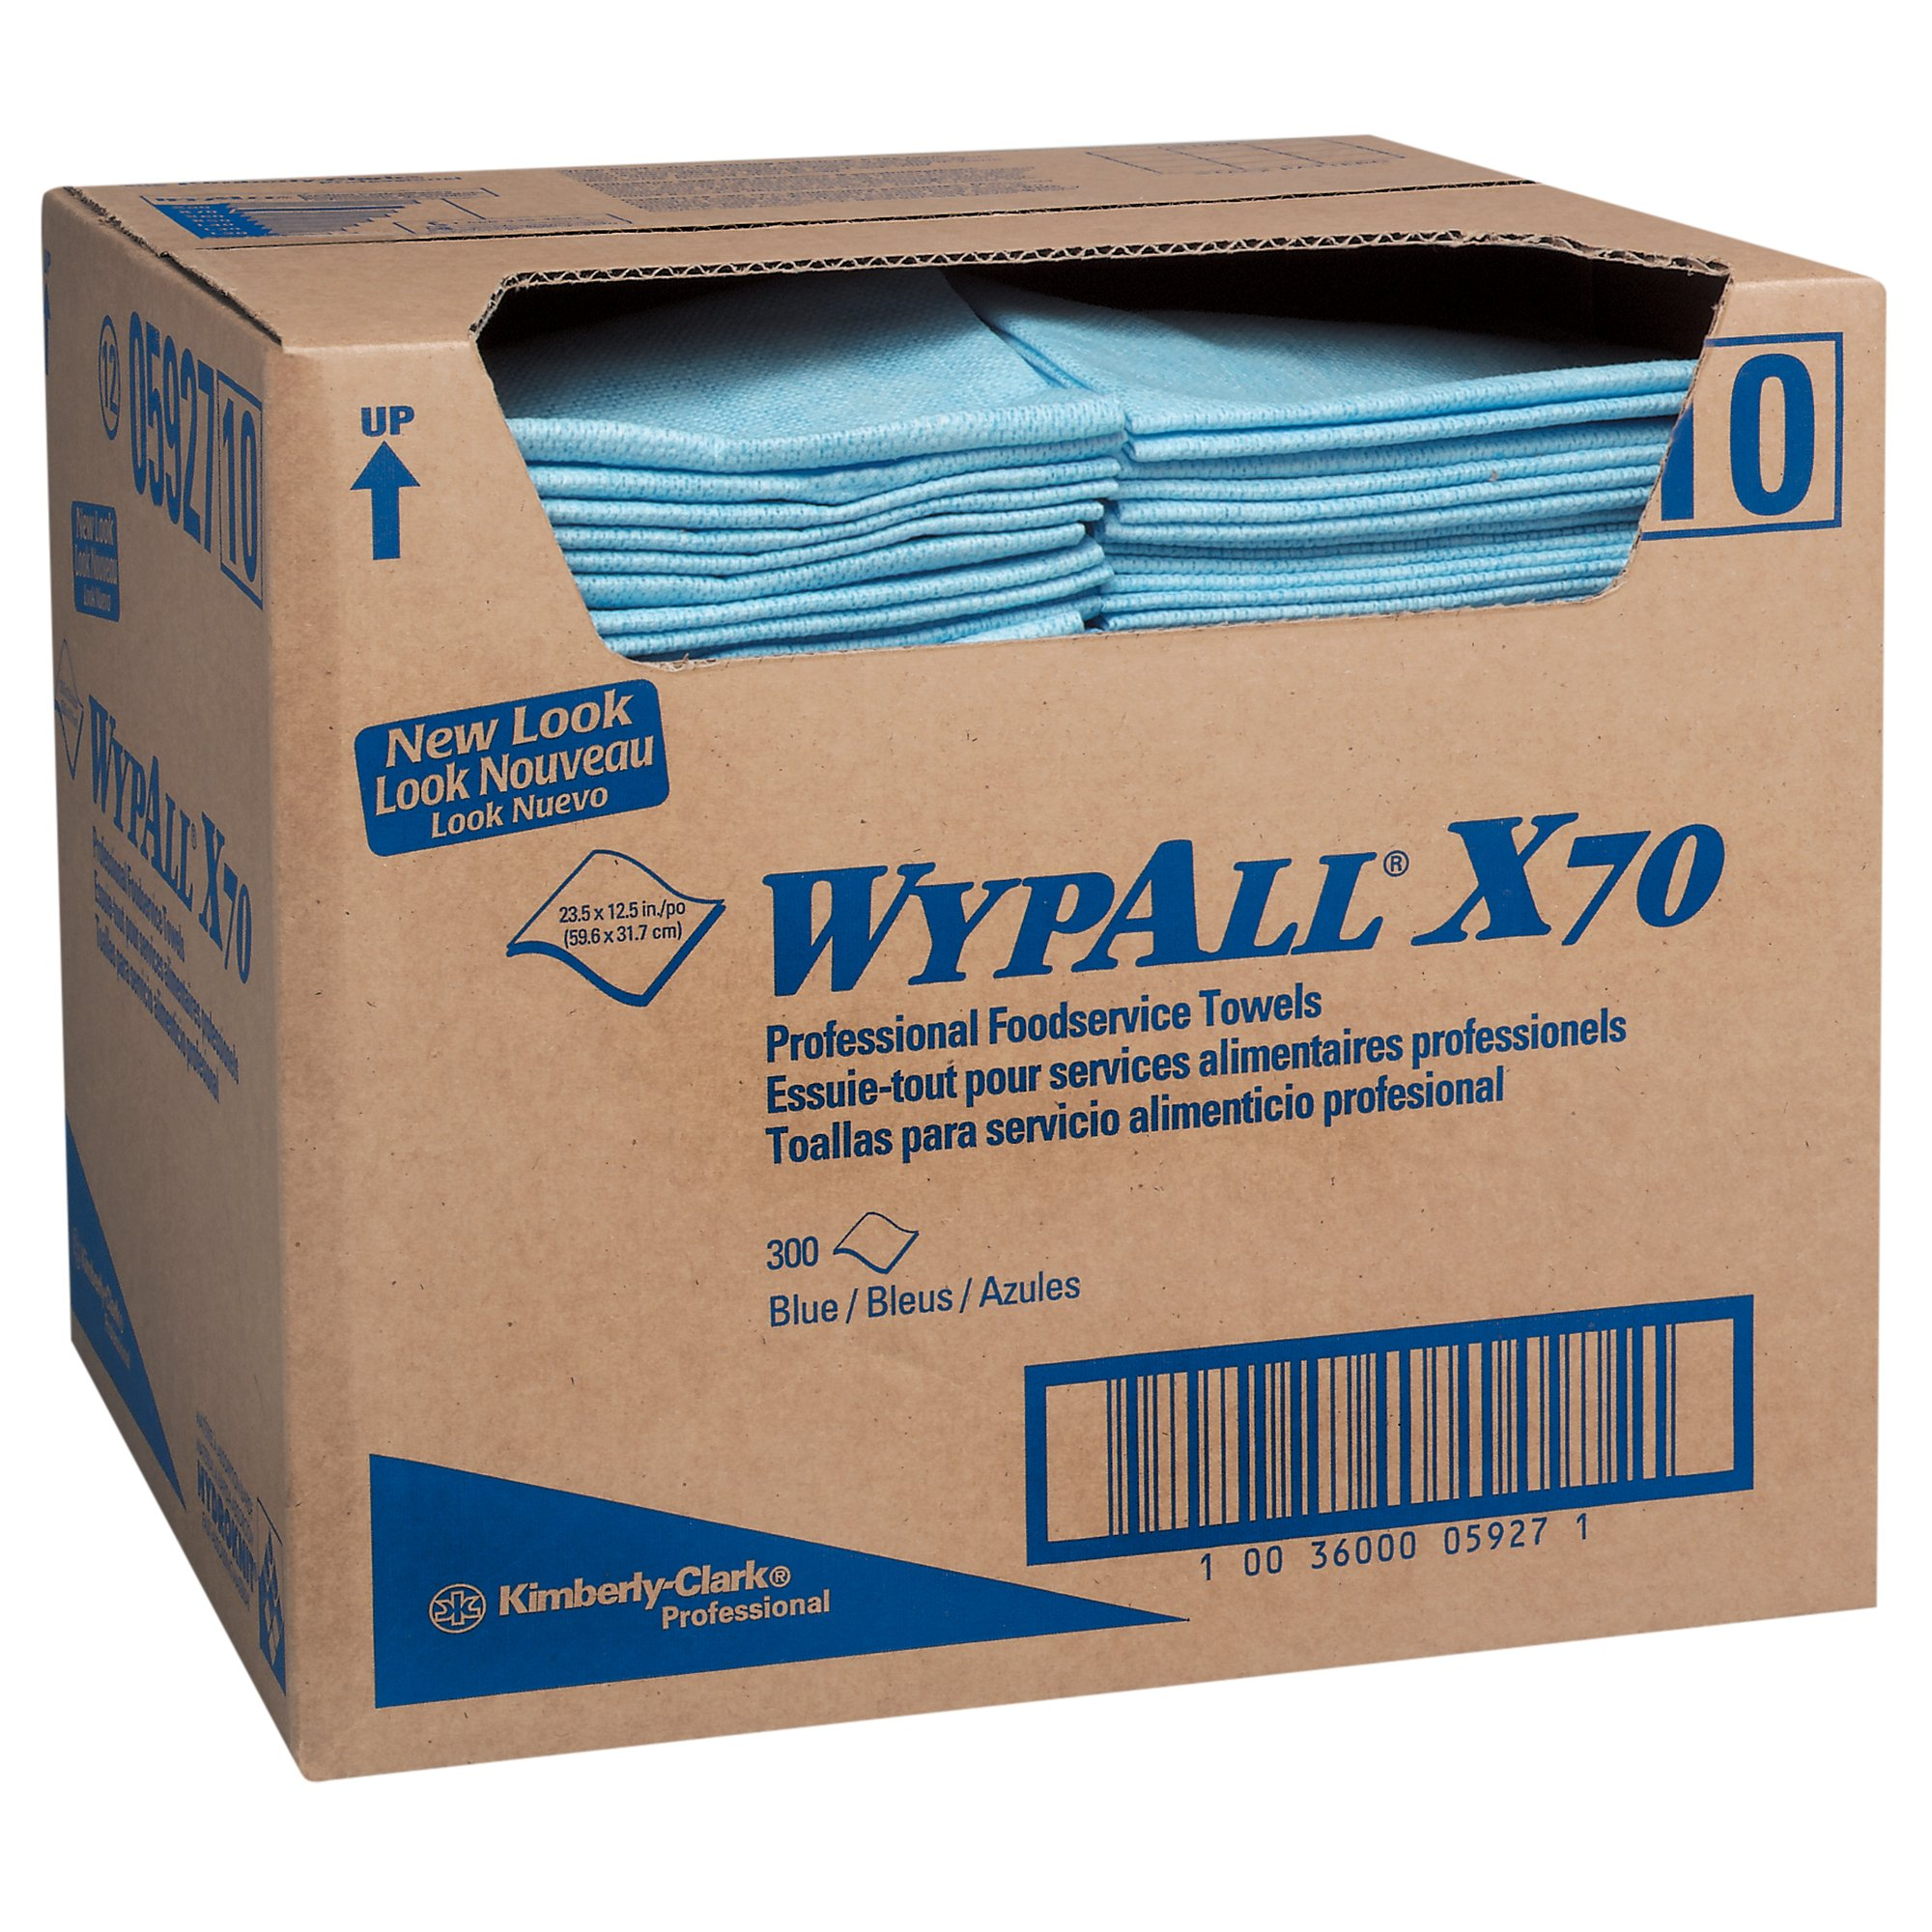 WypAll X70 Extended Use Foodservice Towels Reusable Cloths (05927), Quarterfold, Blue, 1 Box, 300 Sheets